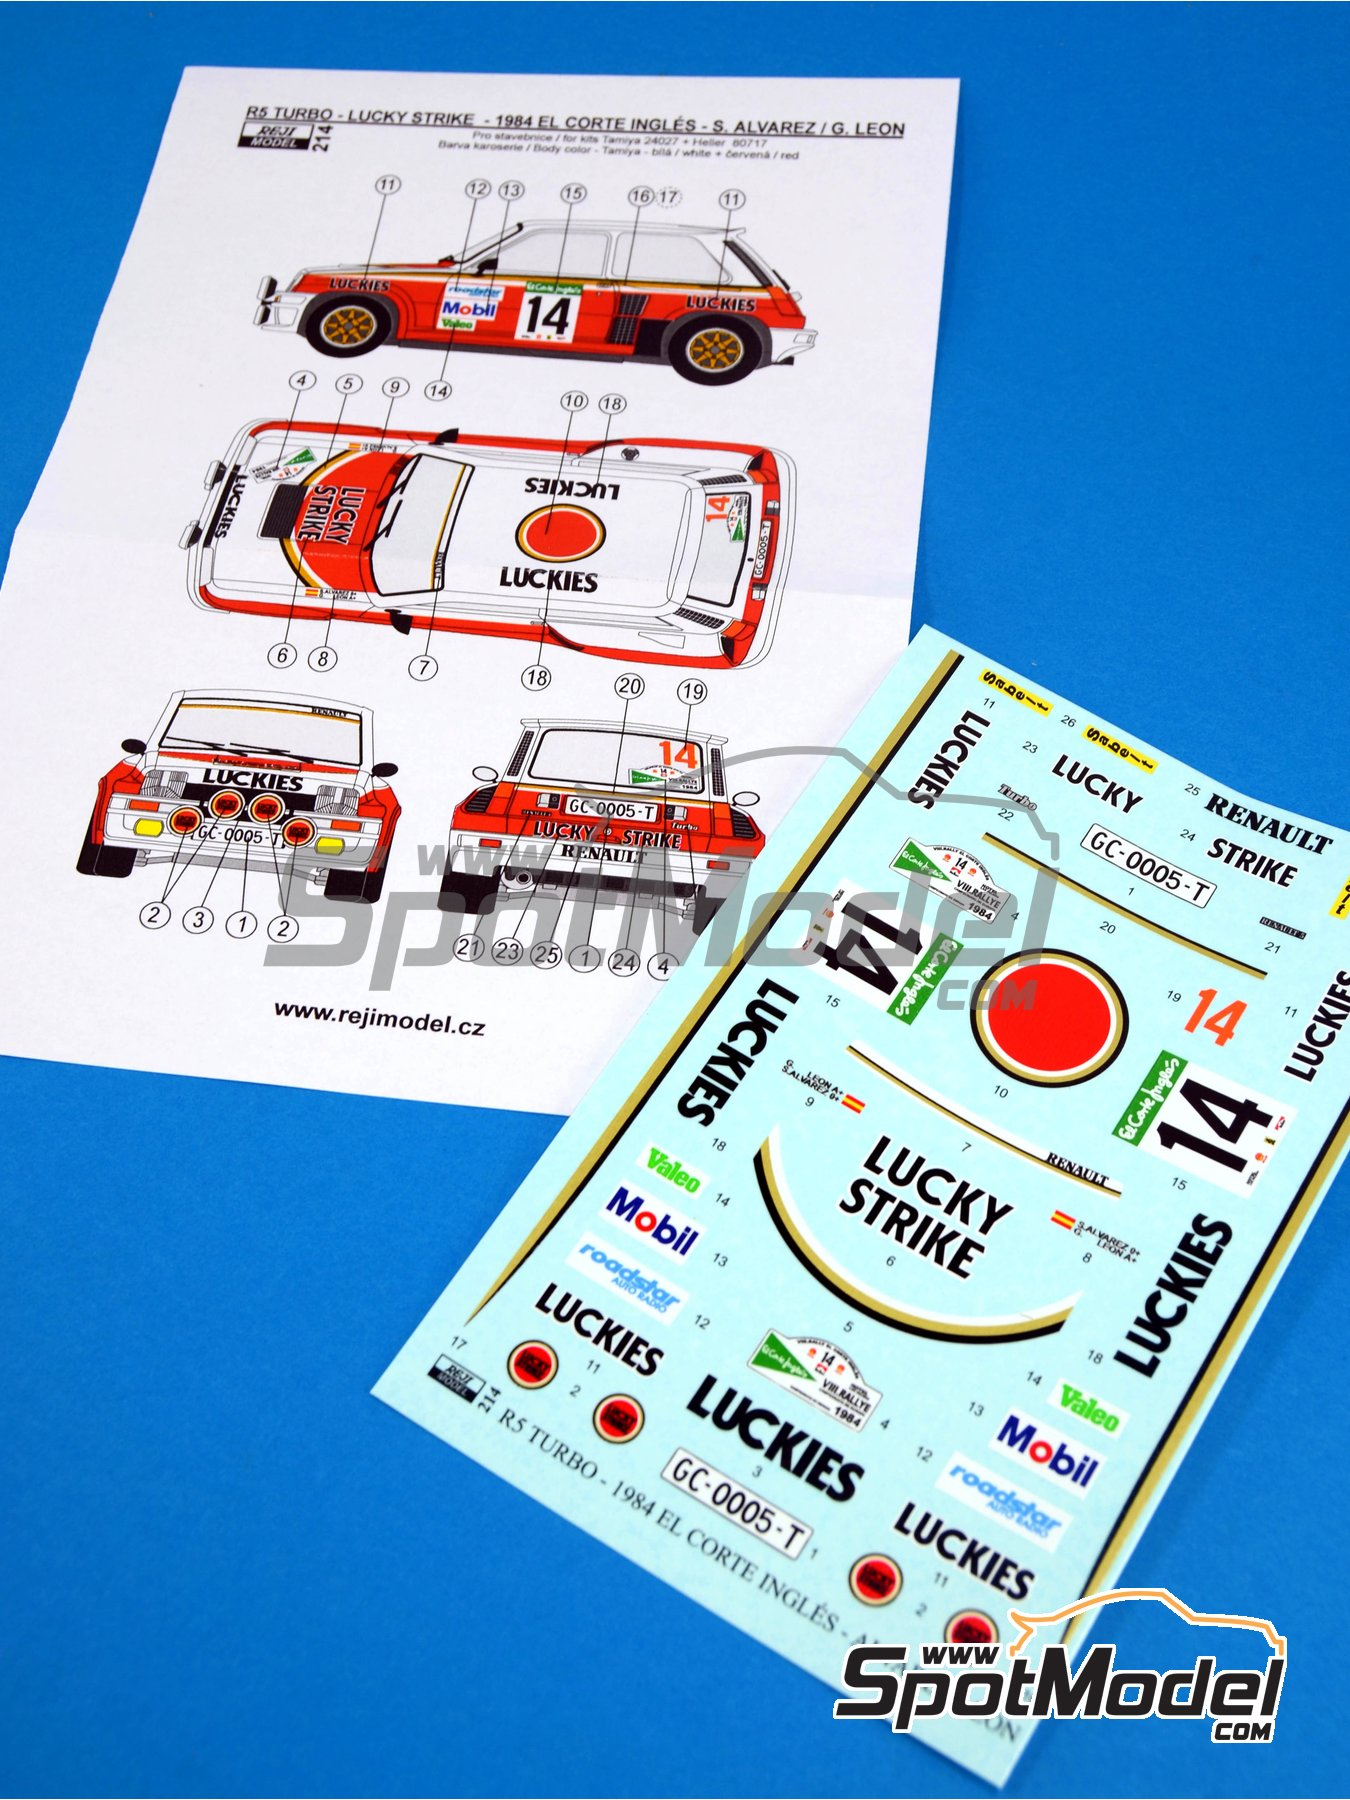 Renault R5 Turbo Lucky Strike - El Corte Ingles Rally 1984 | Marking / livery in 1/24 scale manufactured by Reji Model (ref.REJI-214) image